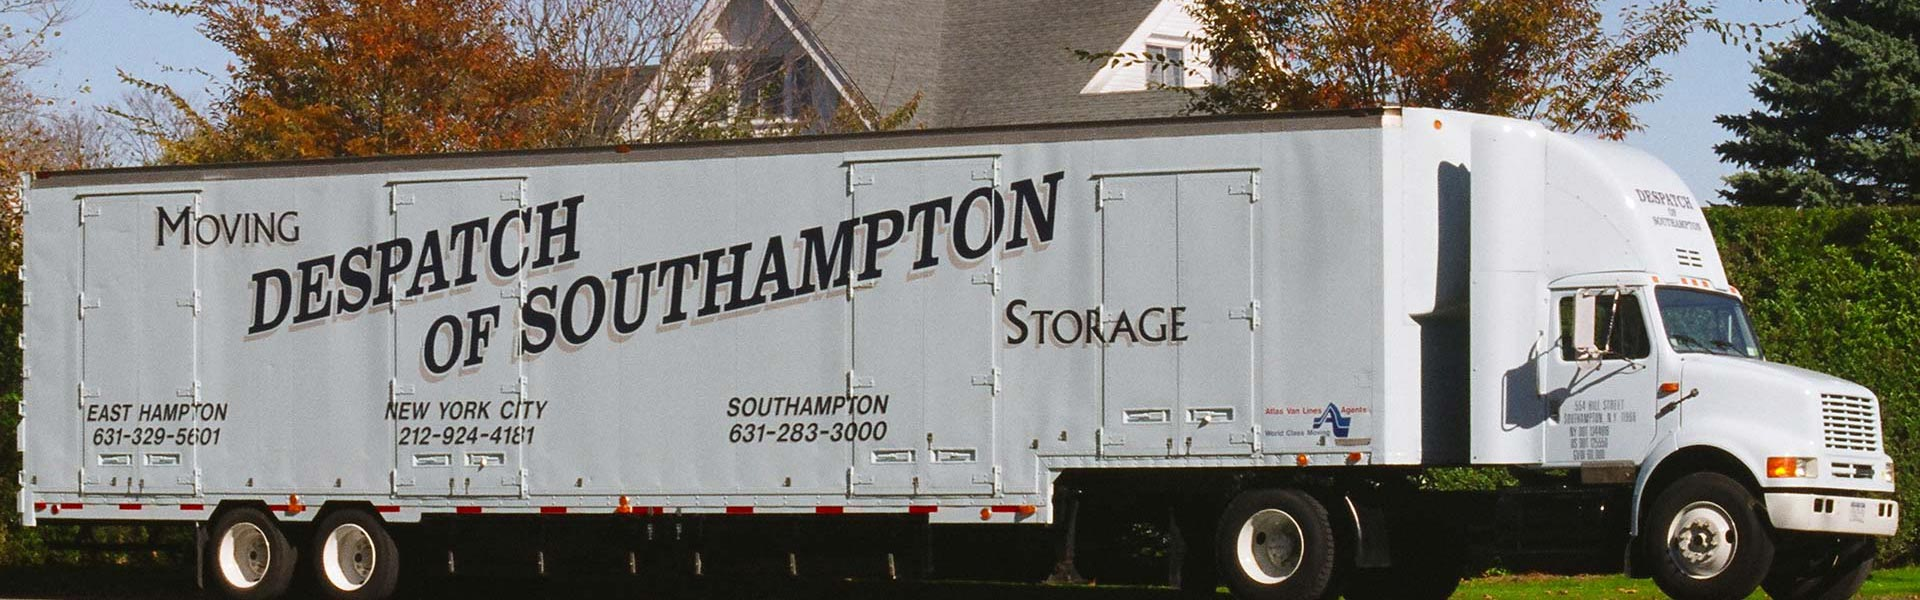 Interstate household goods moving & storage services